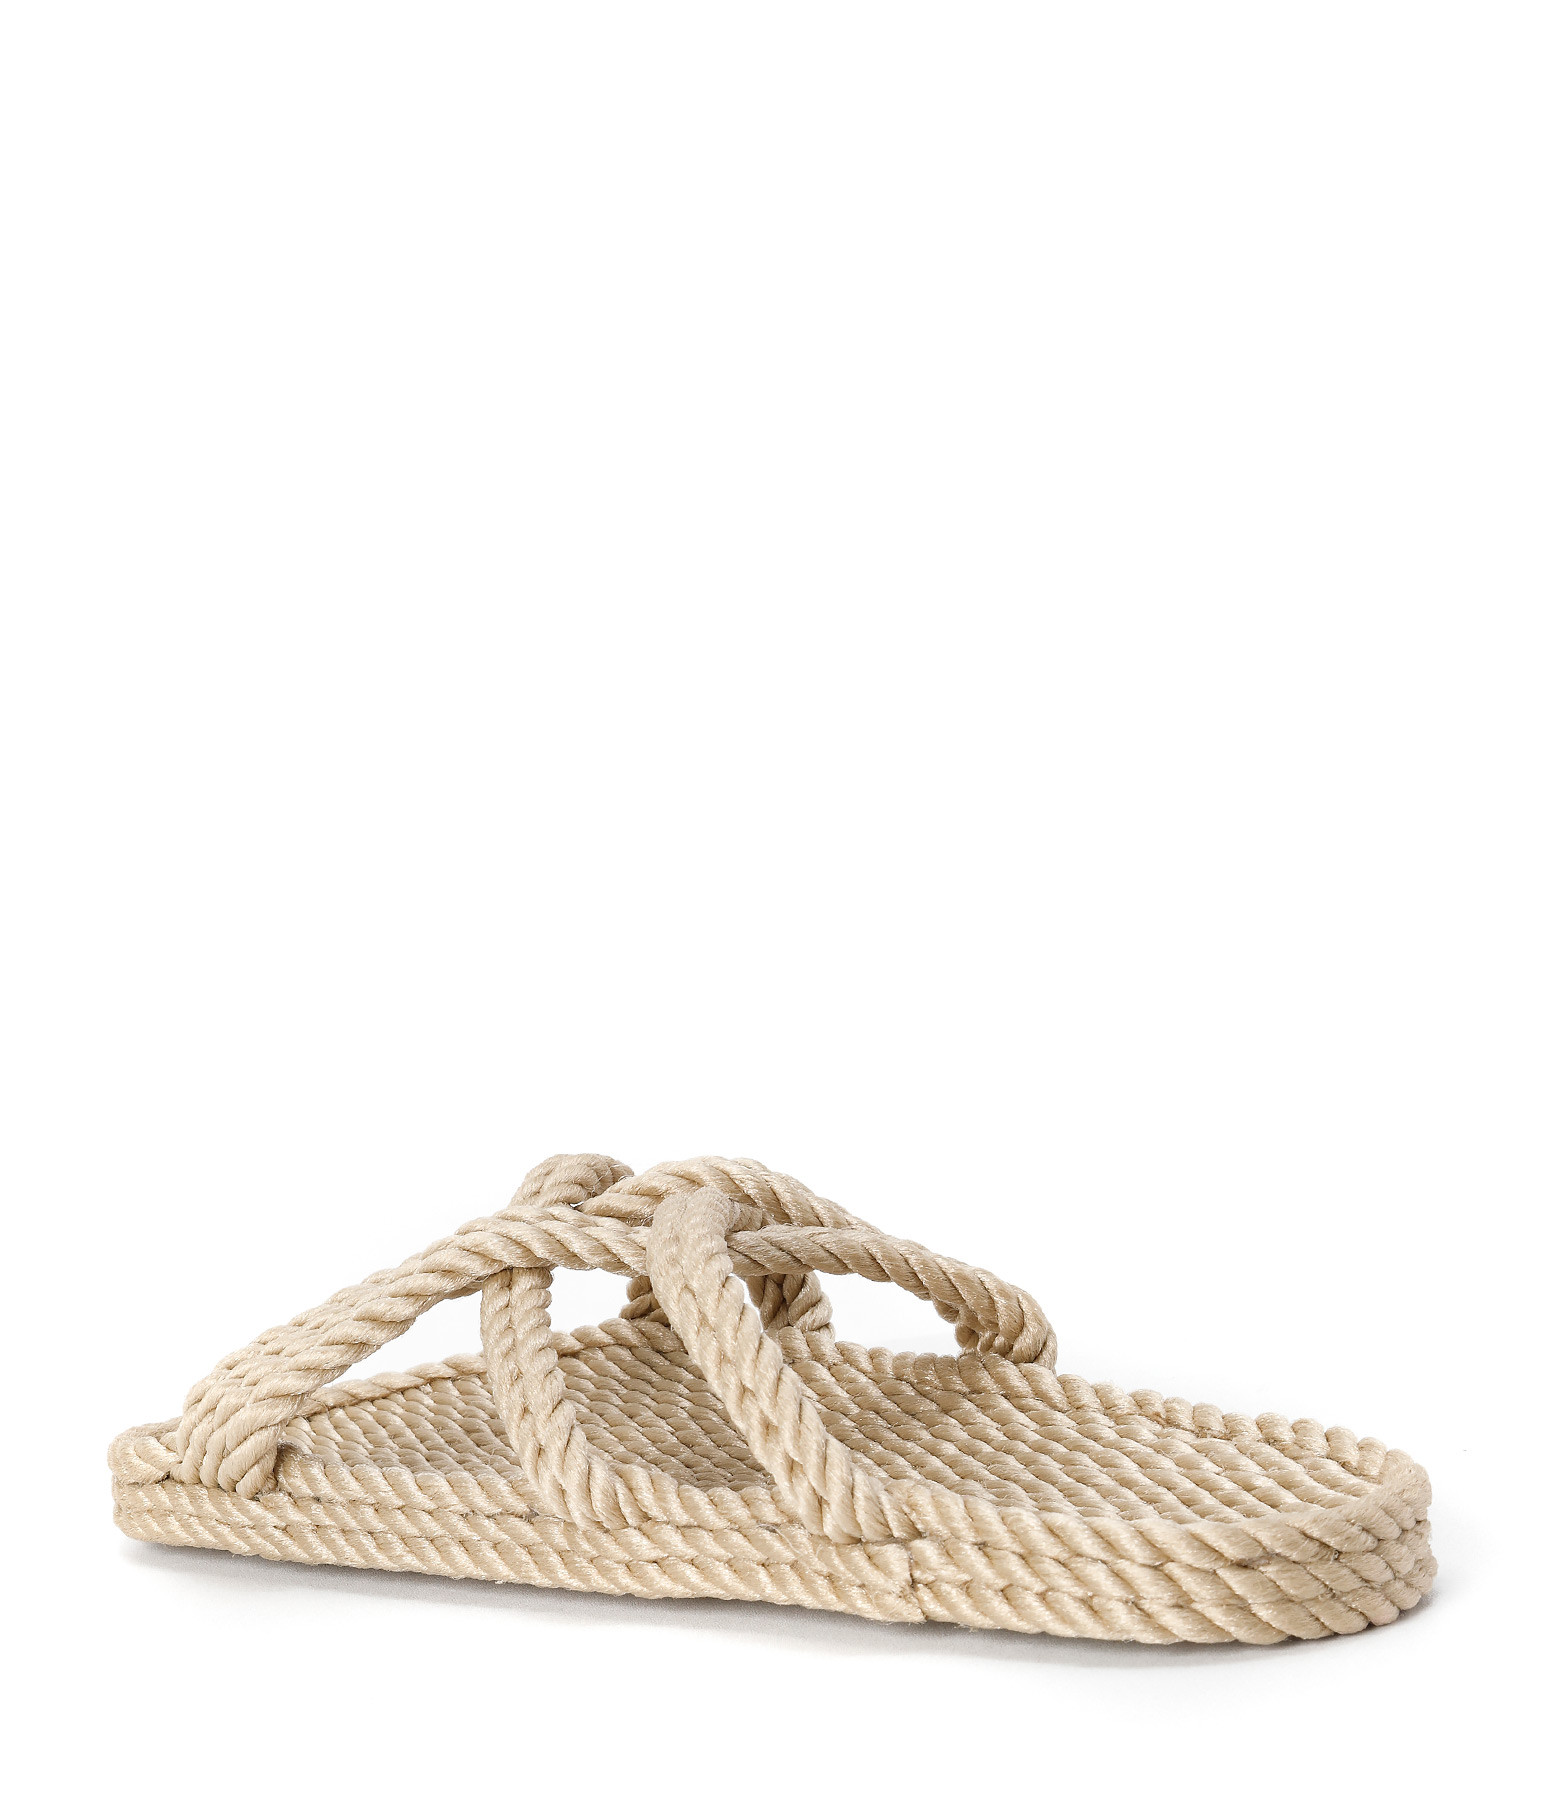 NOMADIC STATE OF MIND - Mules Vegan Slip On Corde Beige